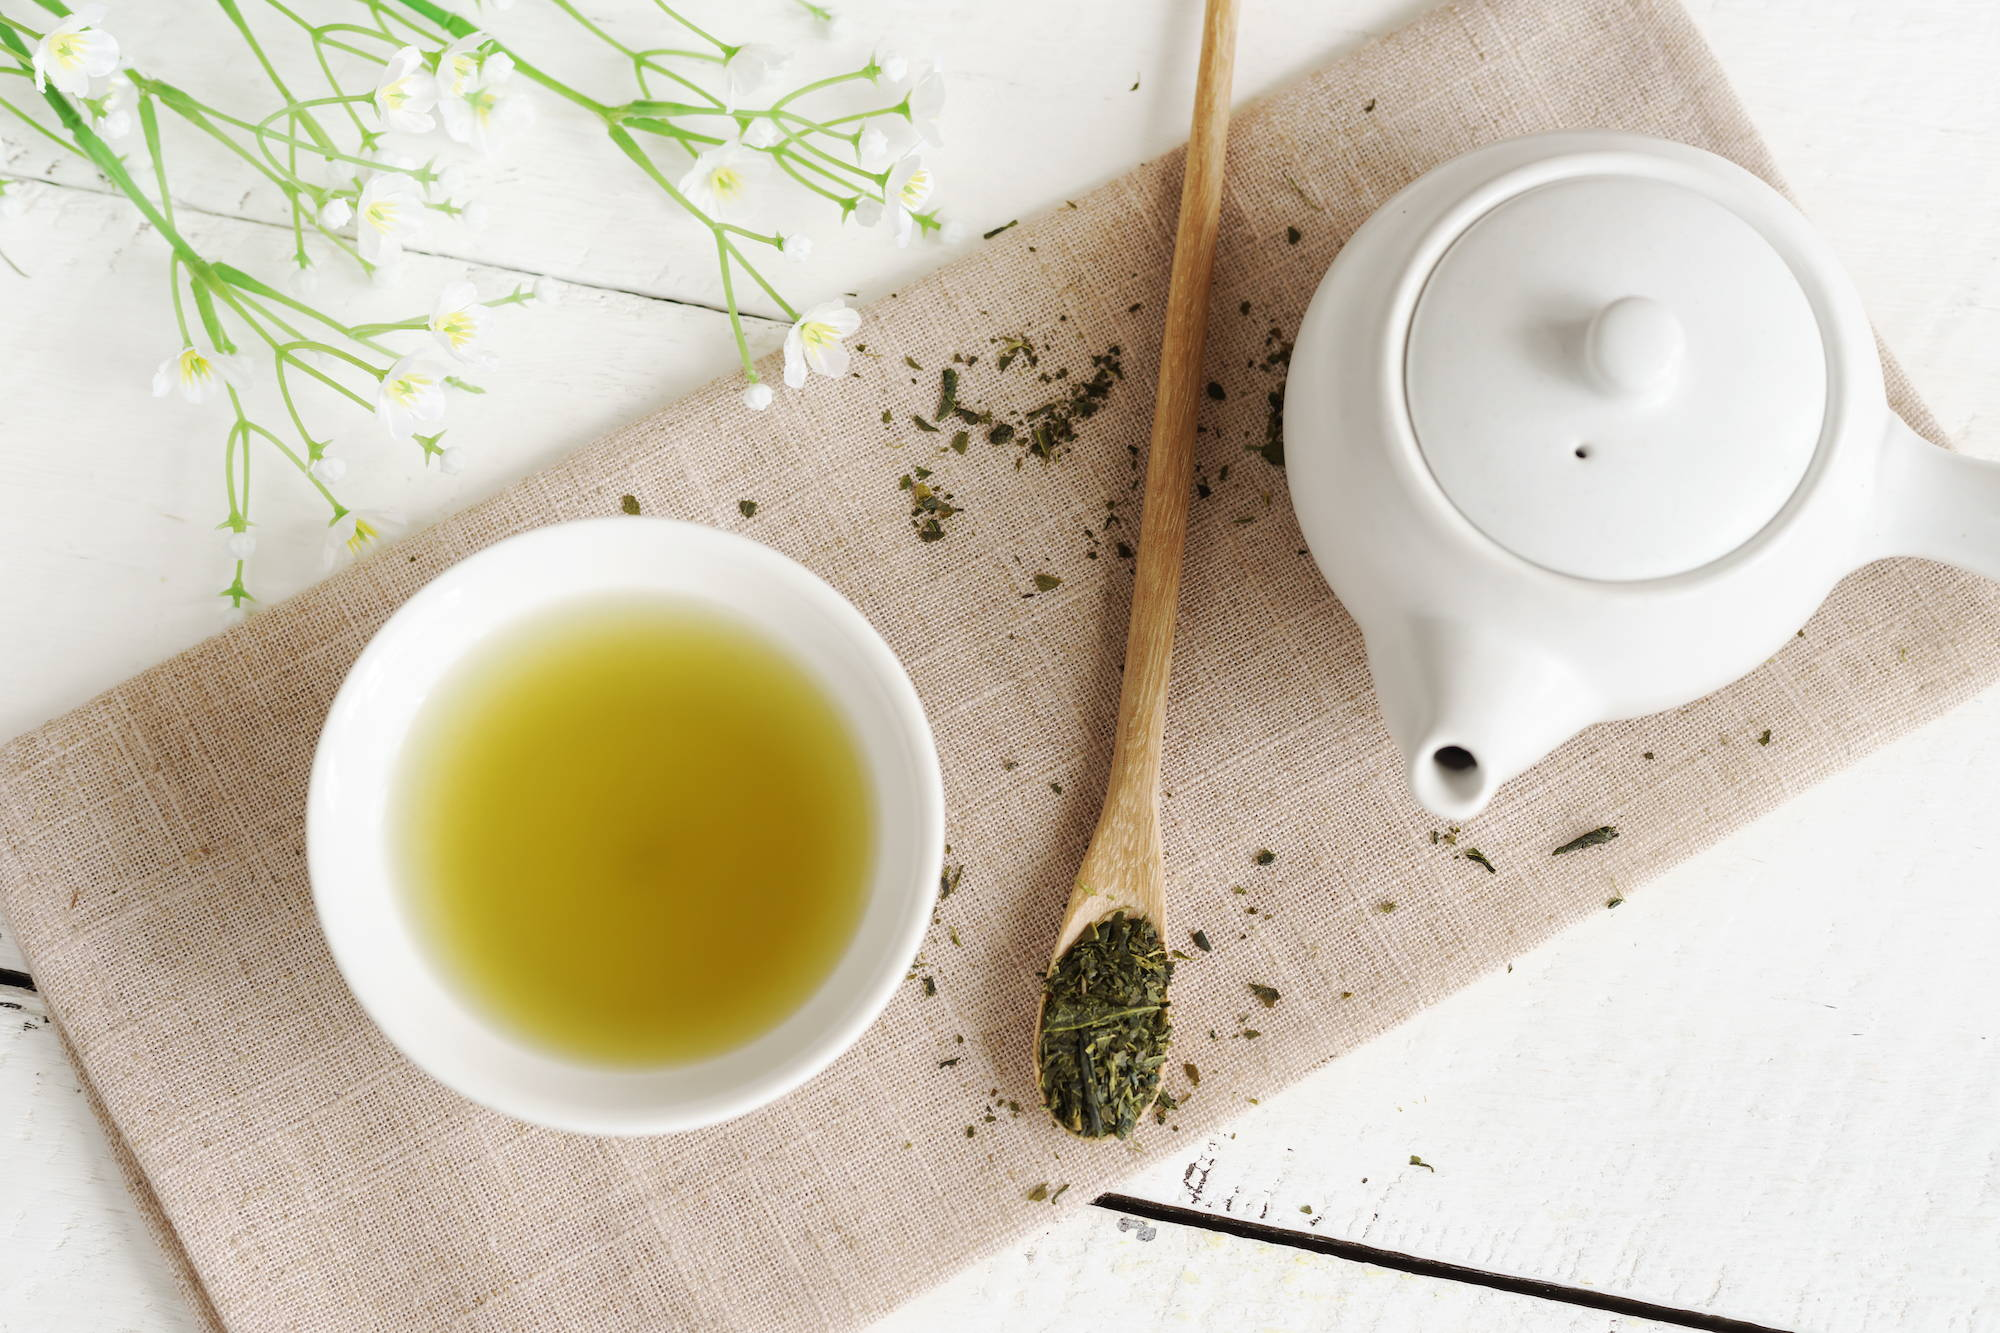 green tea mouthwash may support dental and oral health